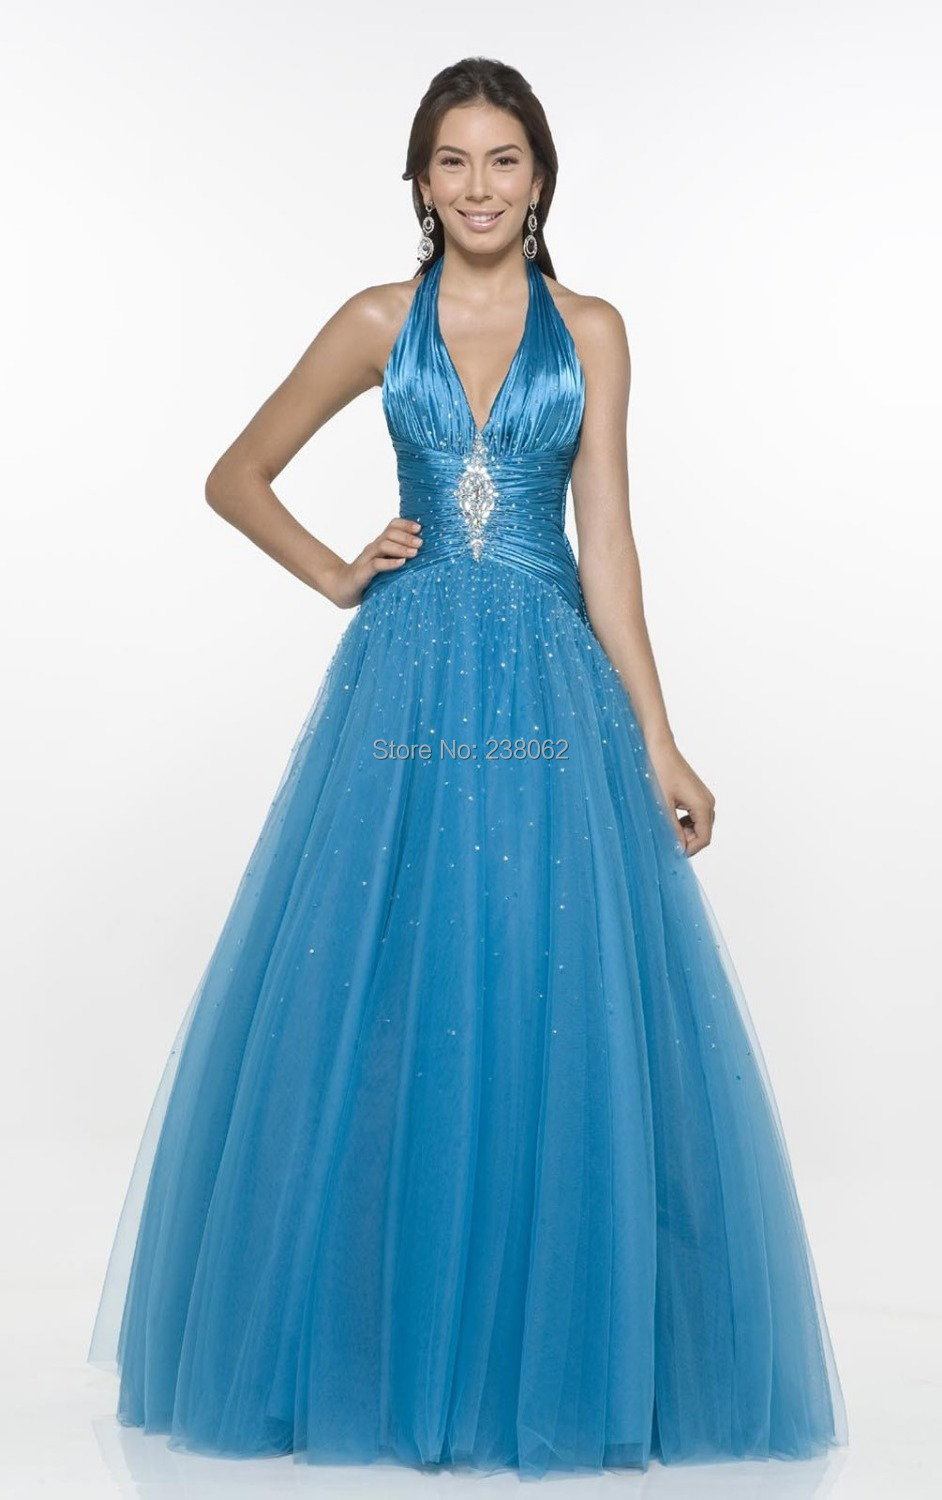 Cheap Masquerade Dresses Uk, find Masquerade Dresses Uk deals on ...